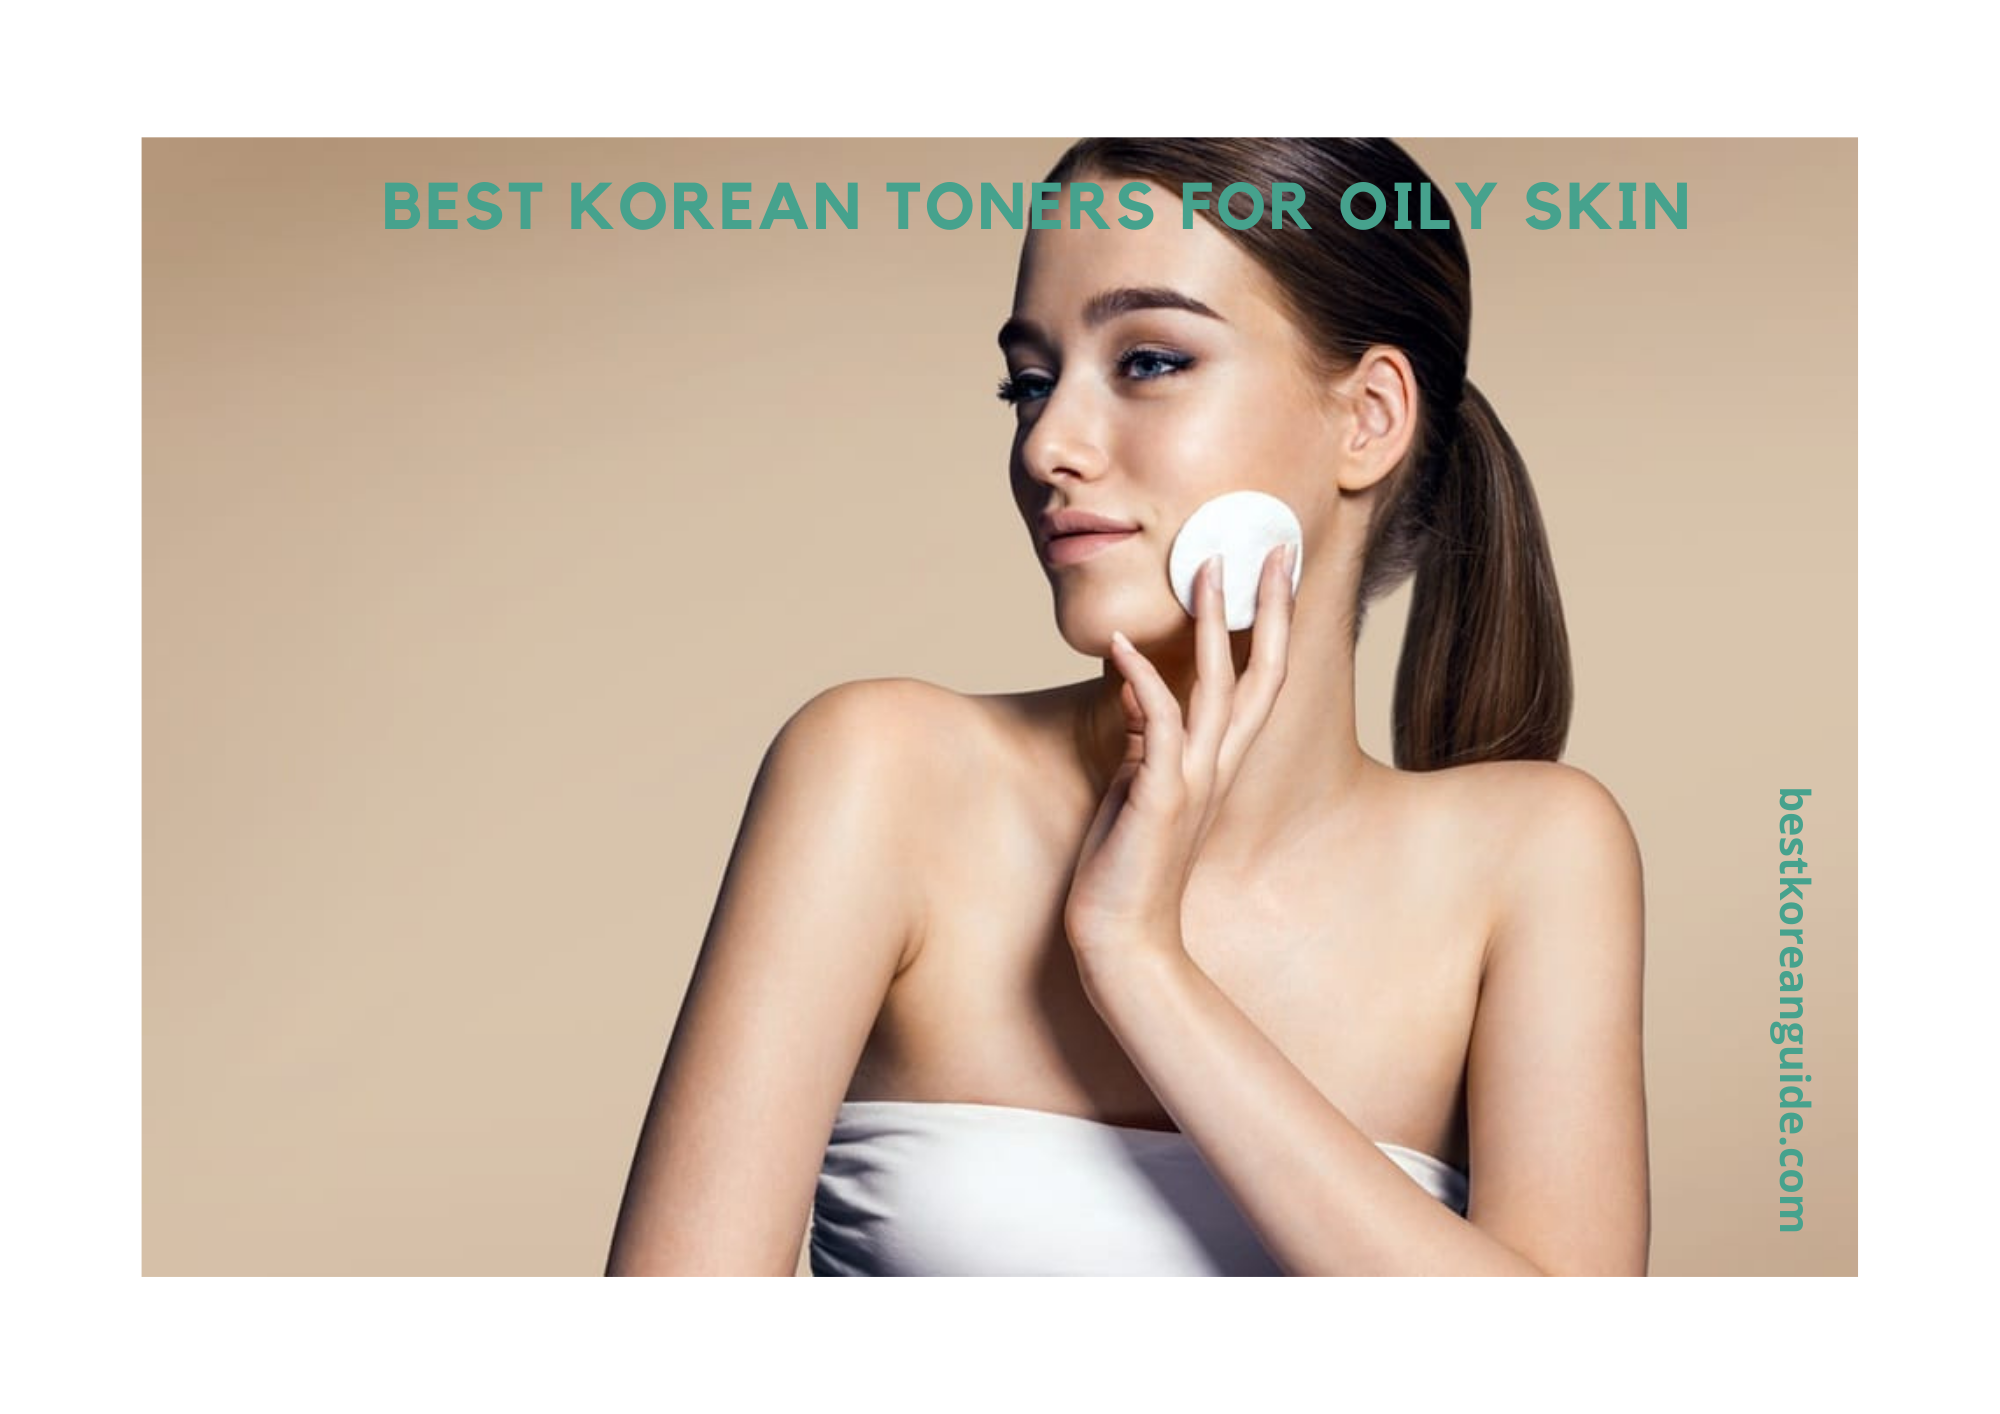 Best Korean Toners for Oily Skin